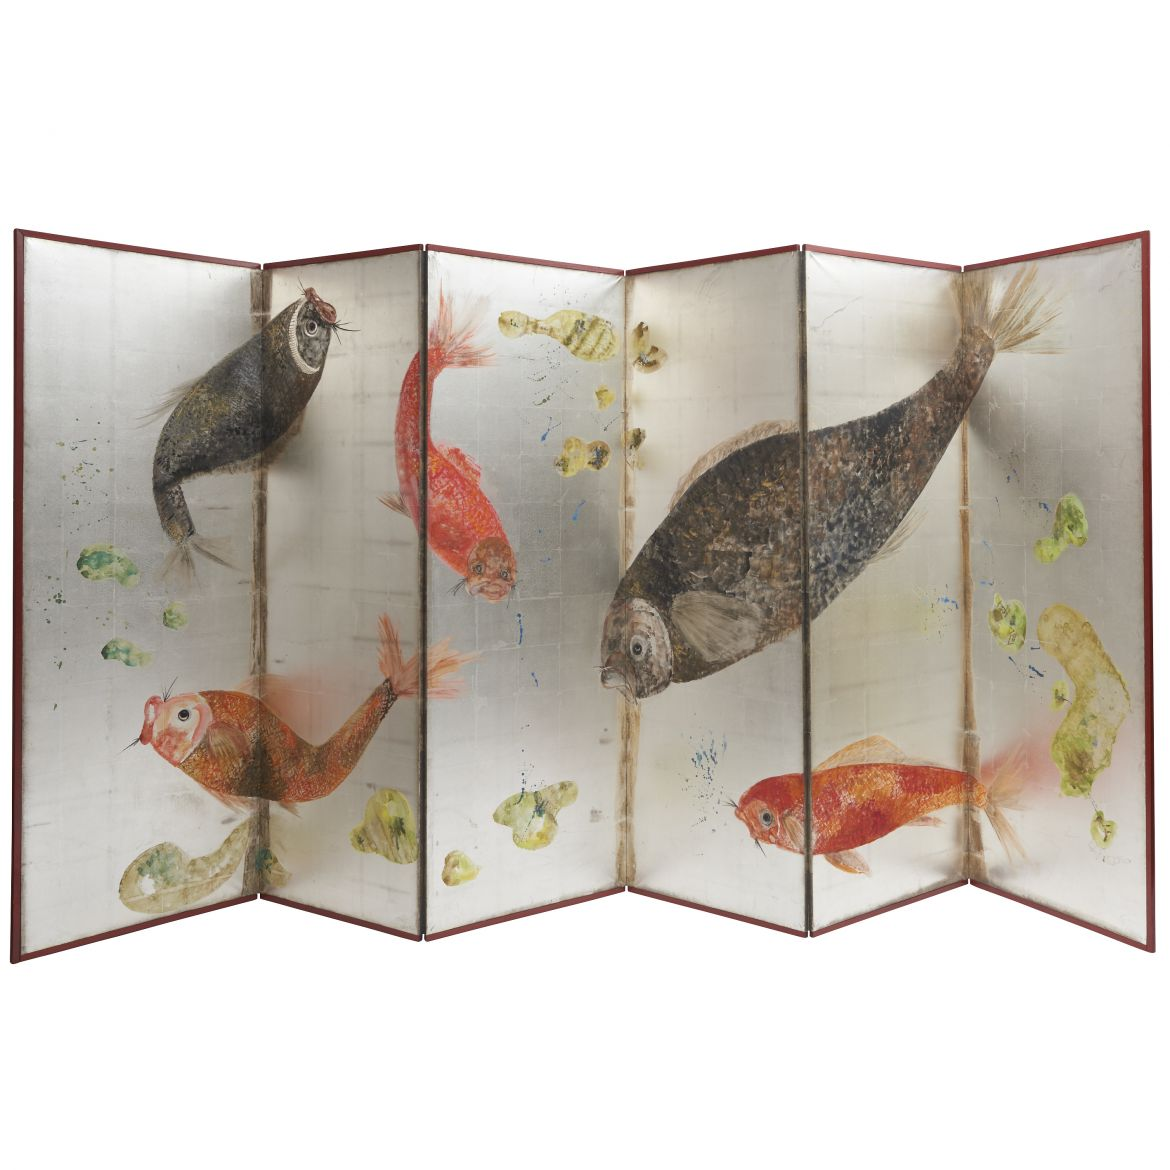 Japanese Screen With Carp